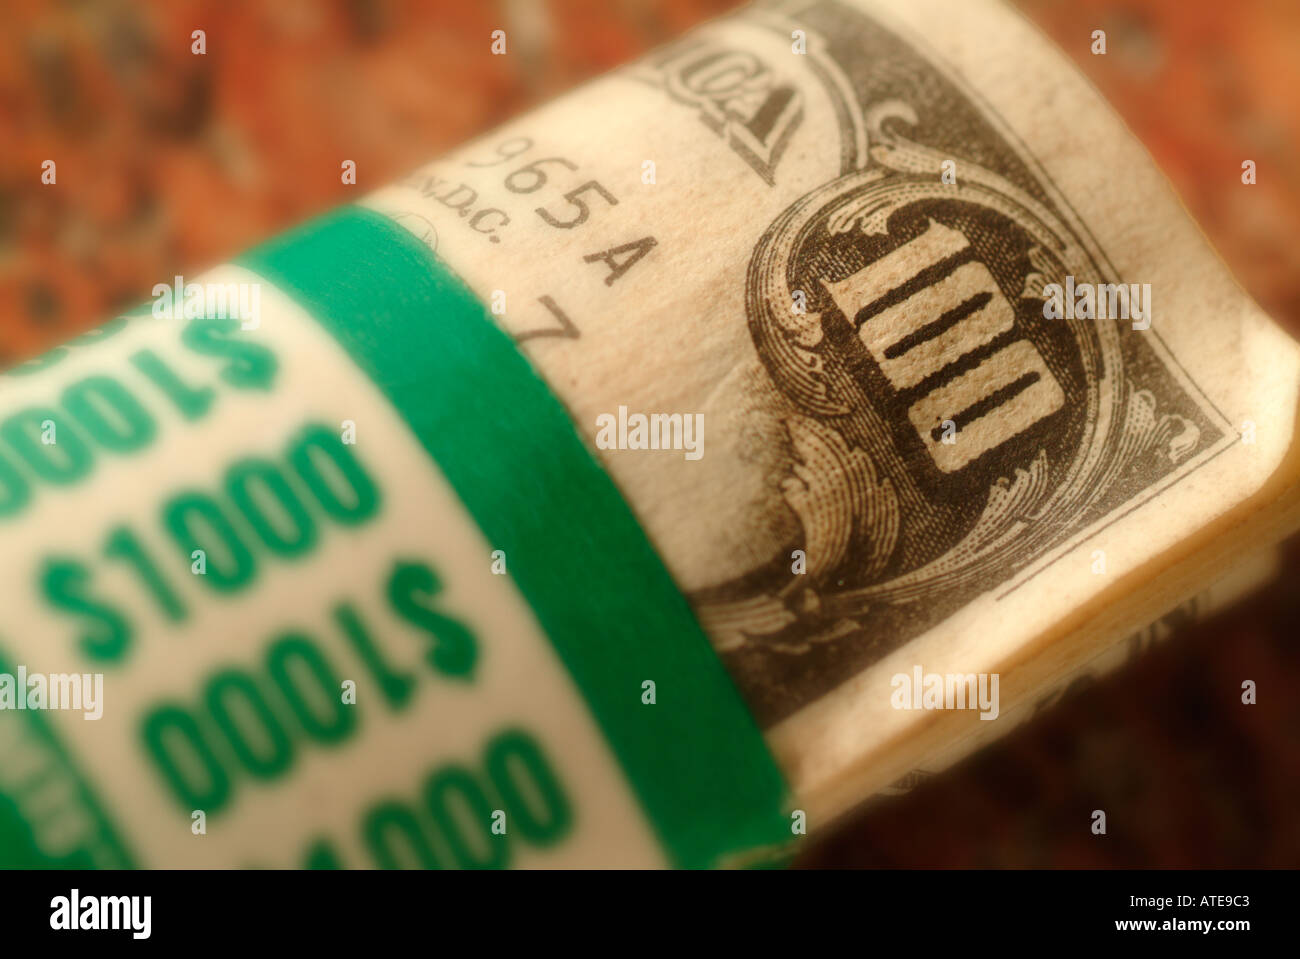 a roll of ten One Hundred dollar bills totaling US $1000 - Stock Image